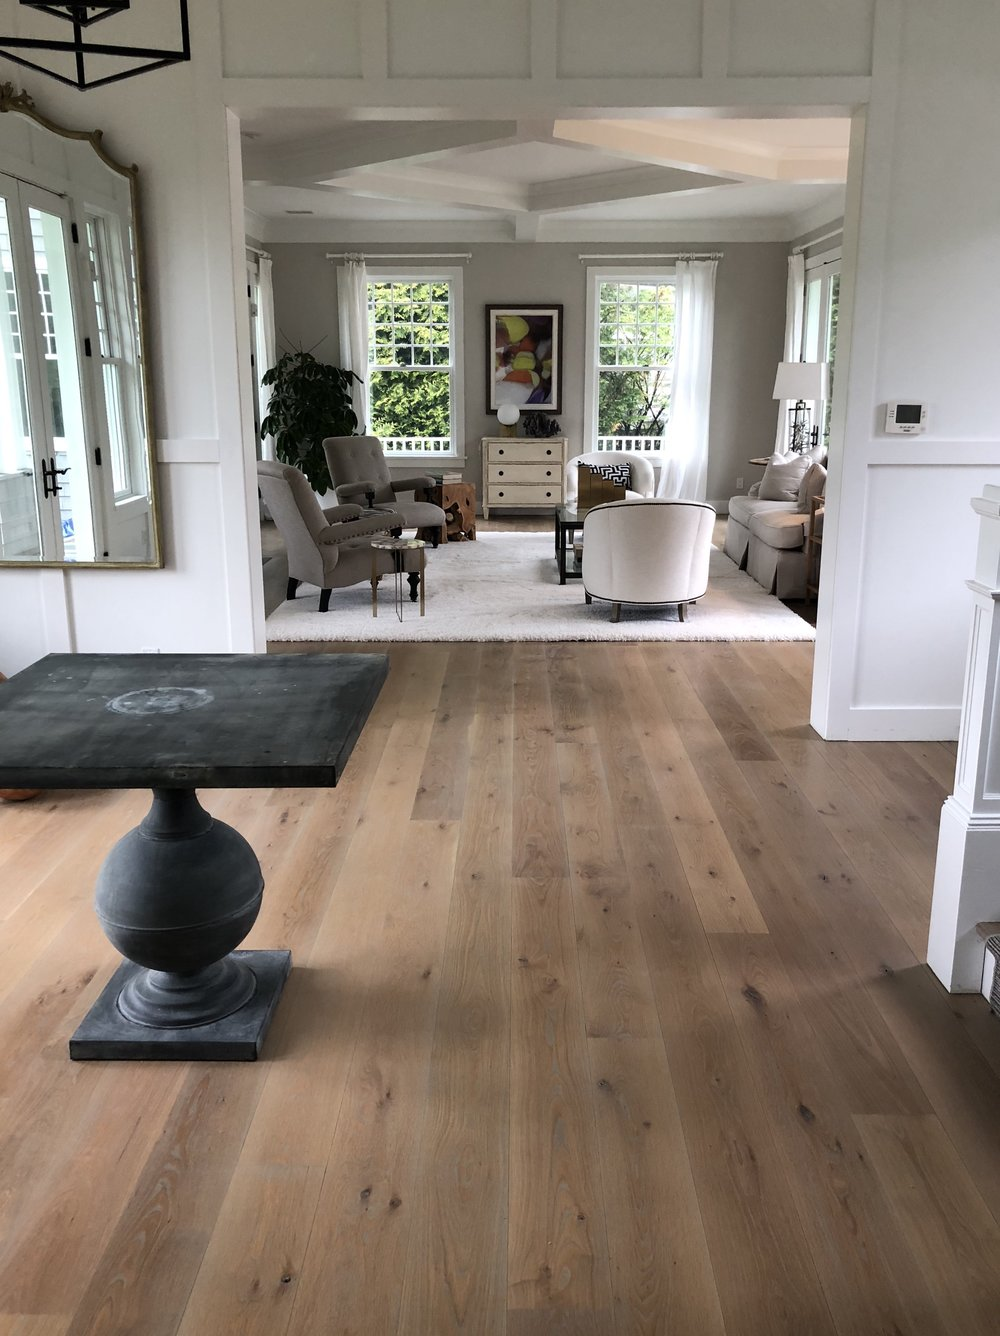 AMAGANSETT:  White Oak floors finished with Rubio Monocoat 2C Oil, Smoke